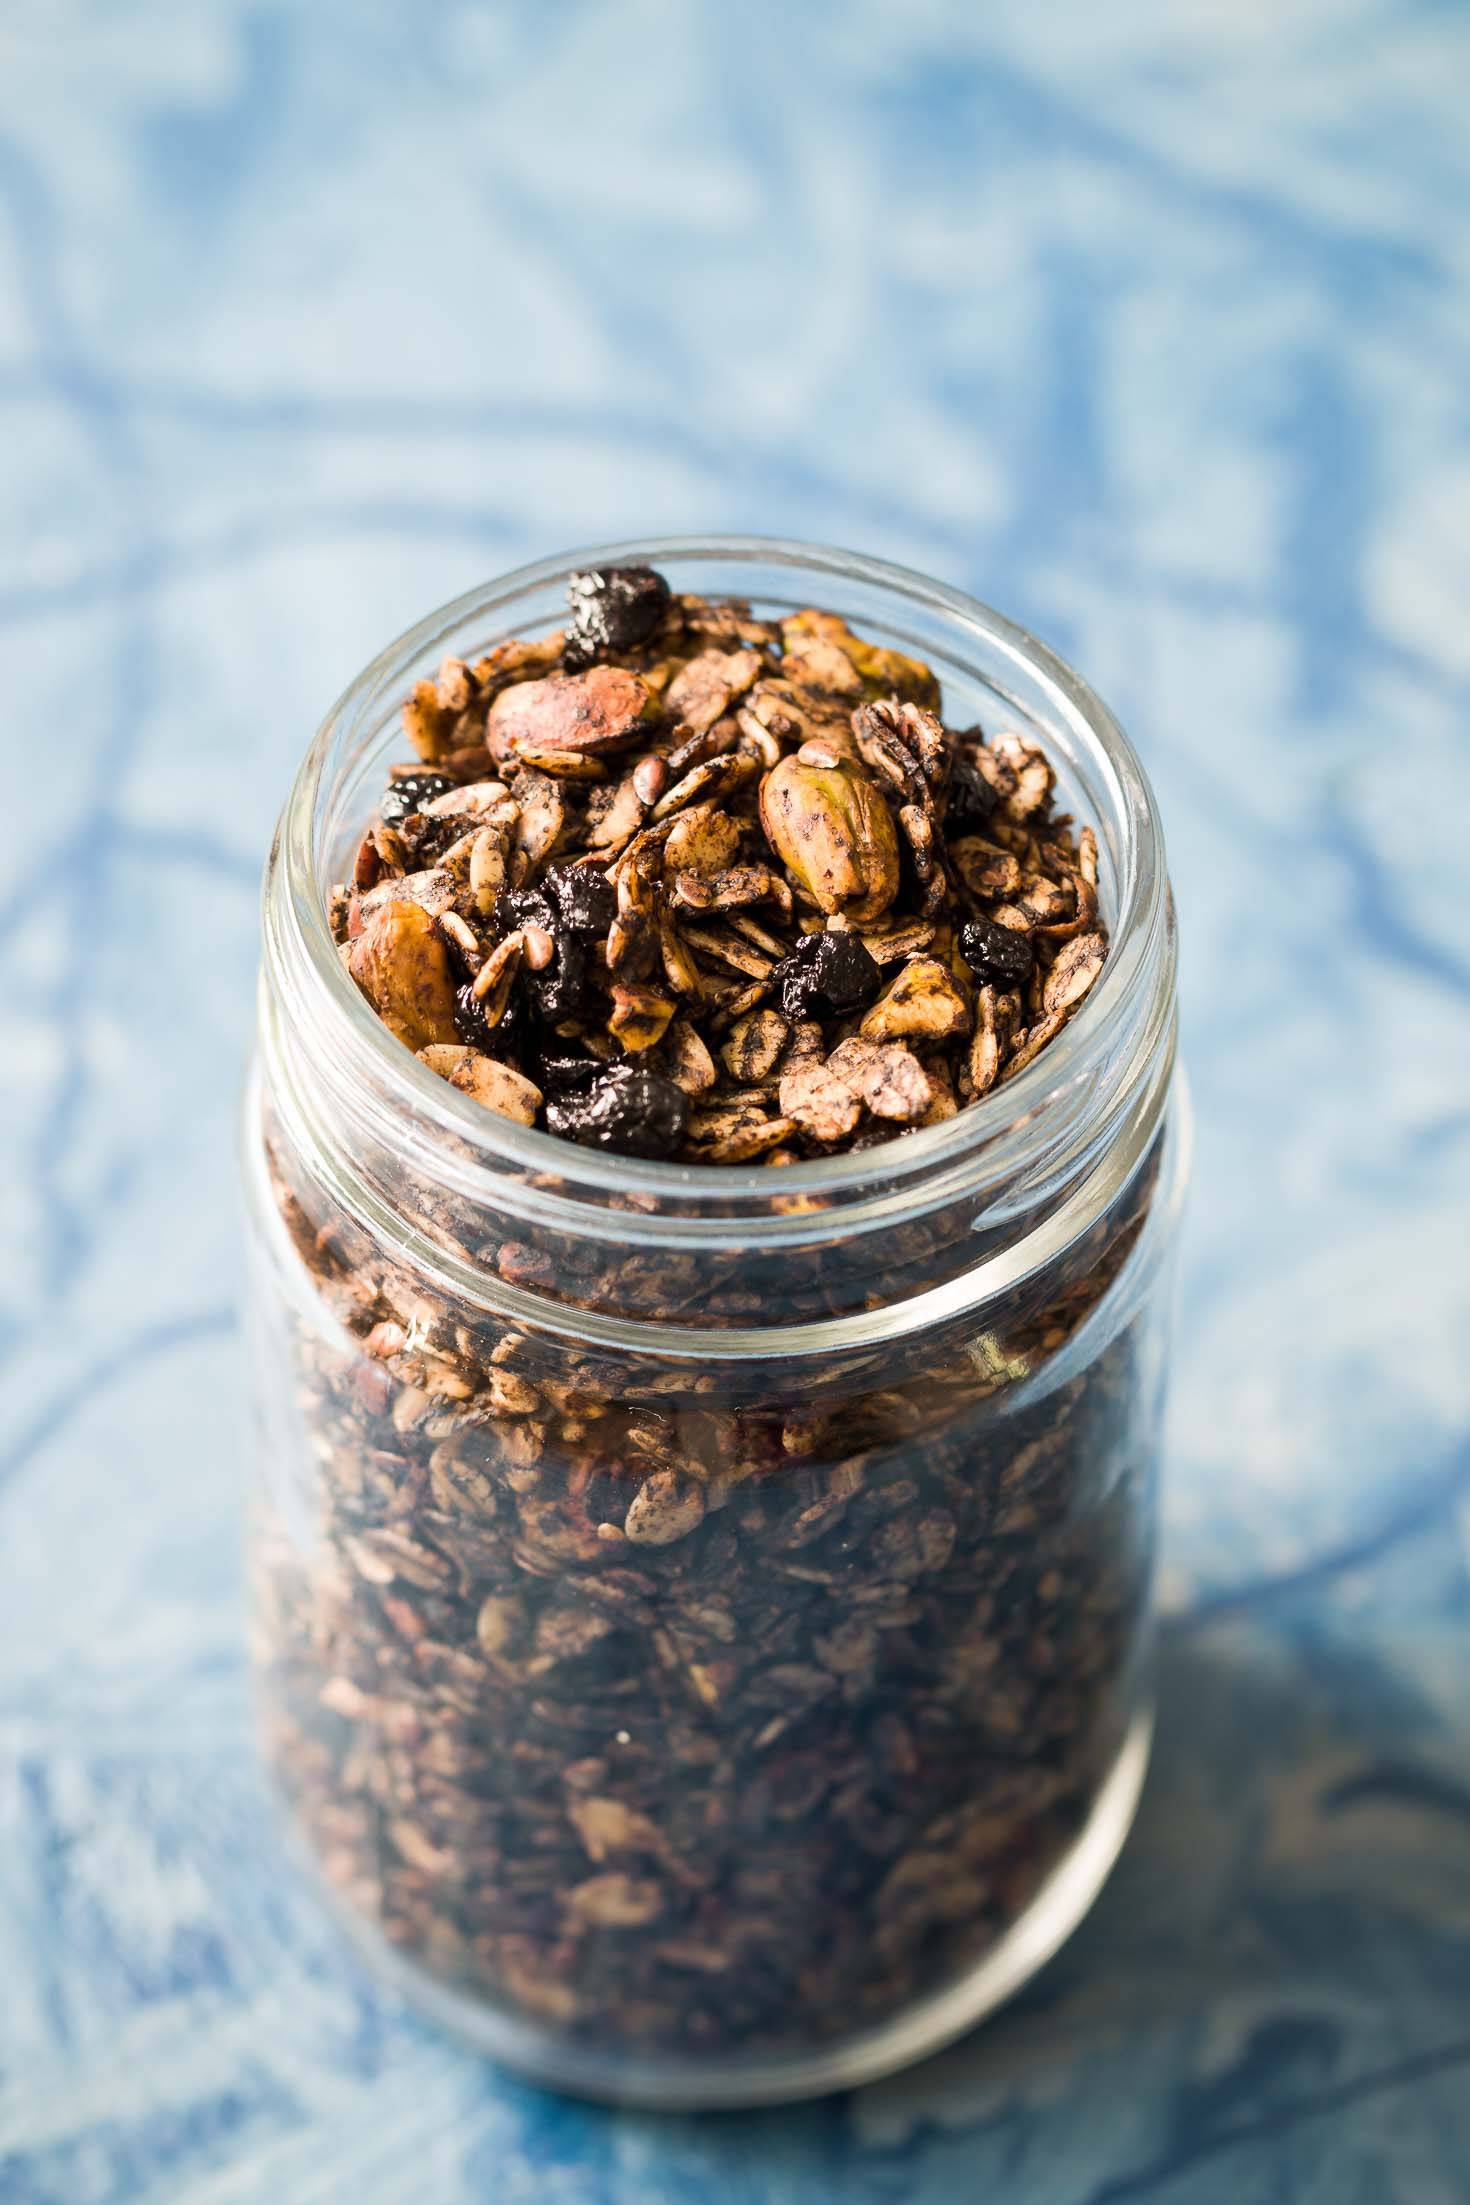 Pistachio Chocolate Granola-front-top view-granola in a glass jar